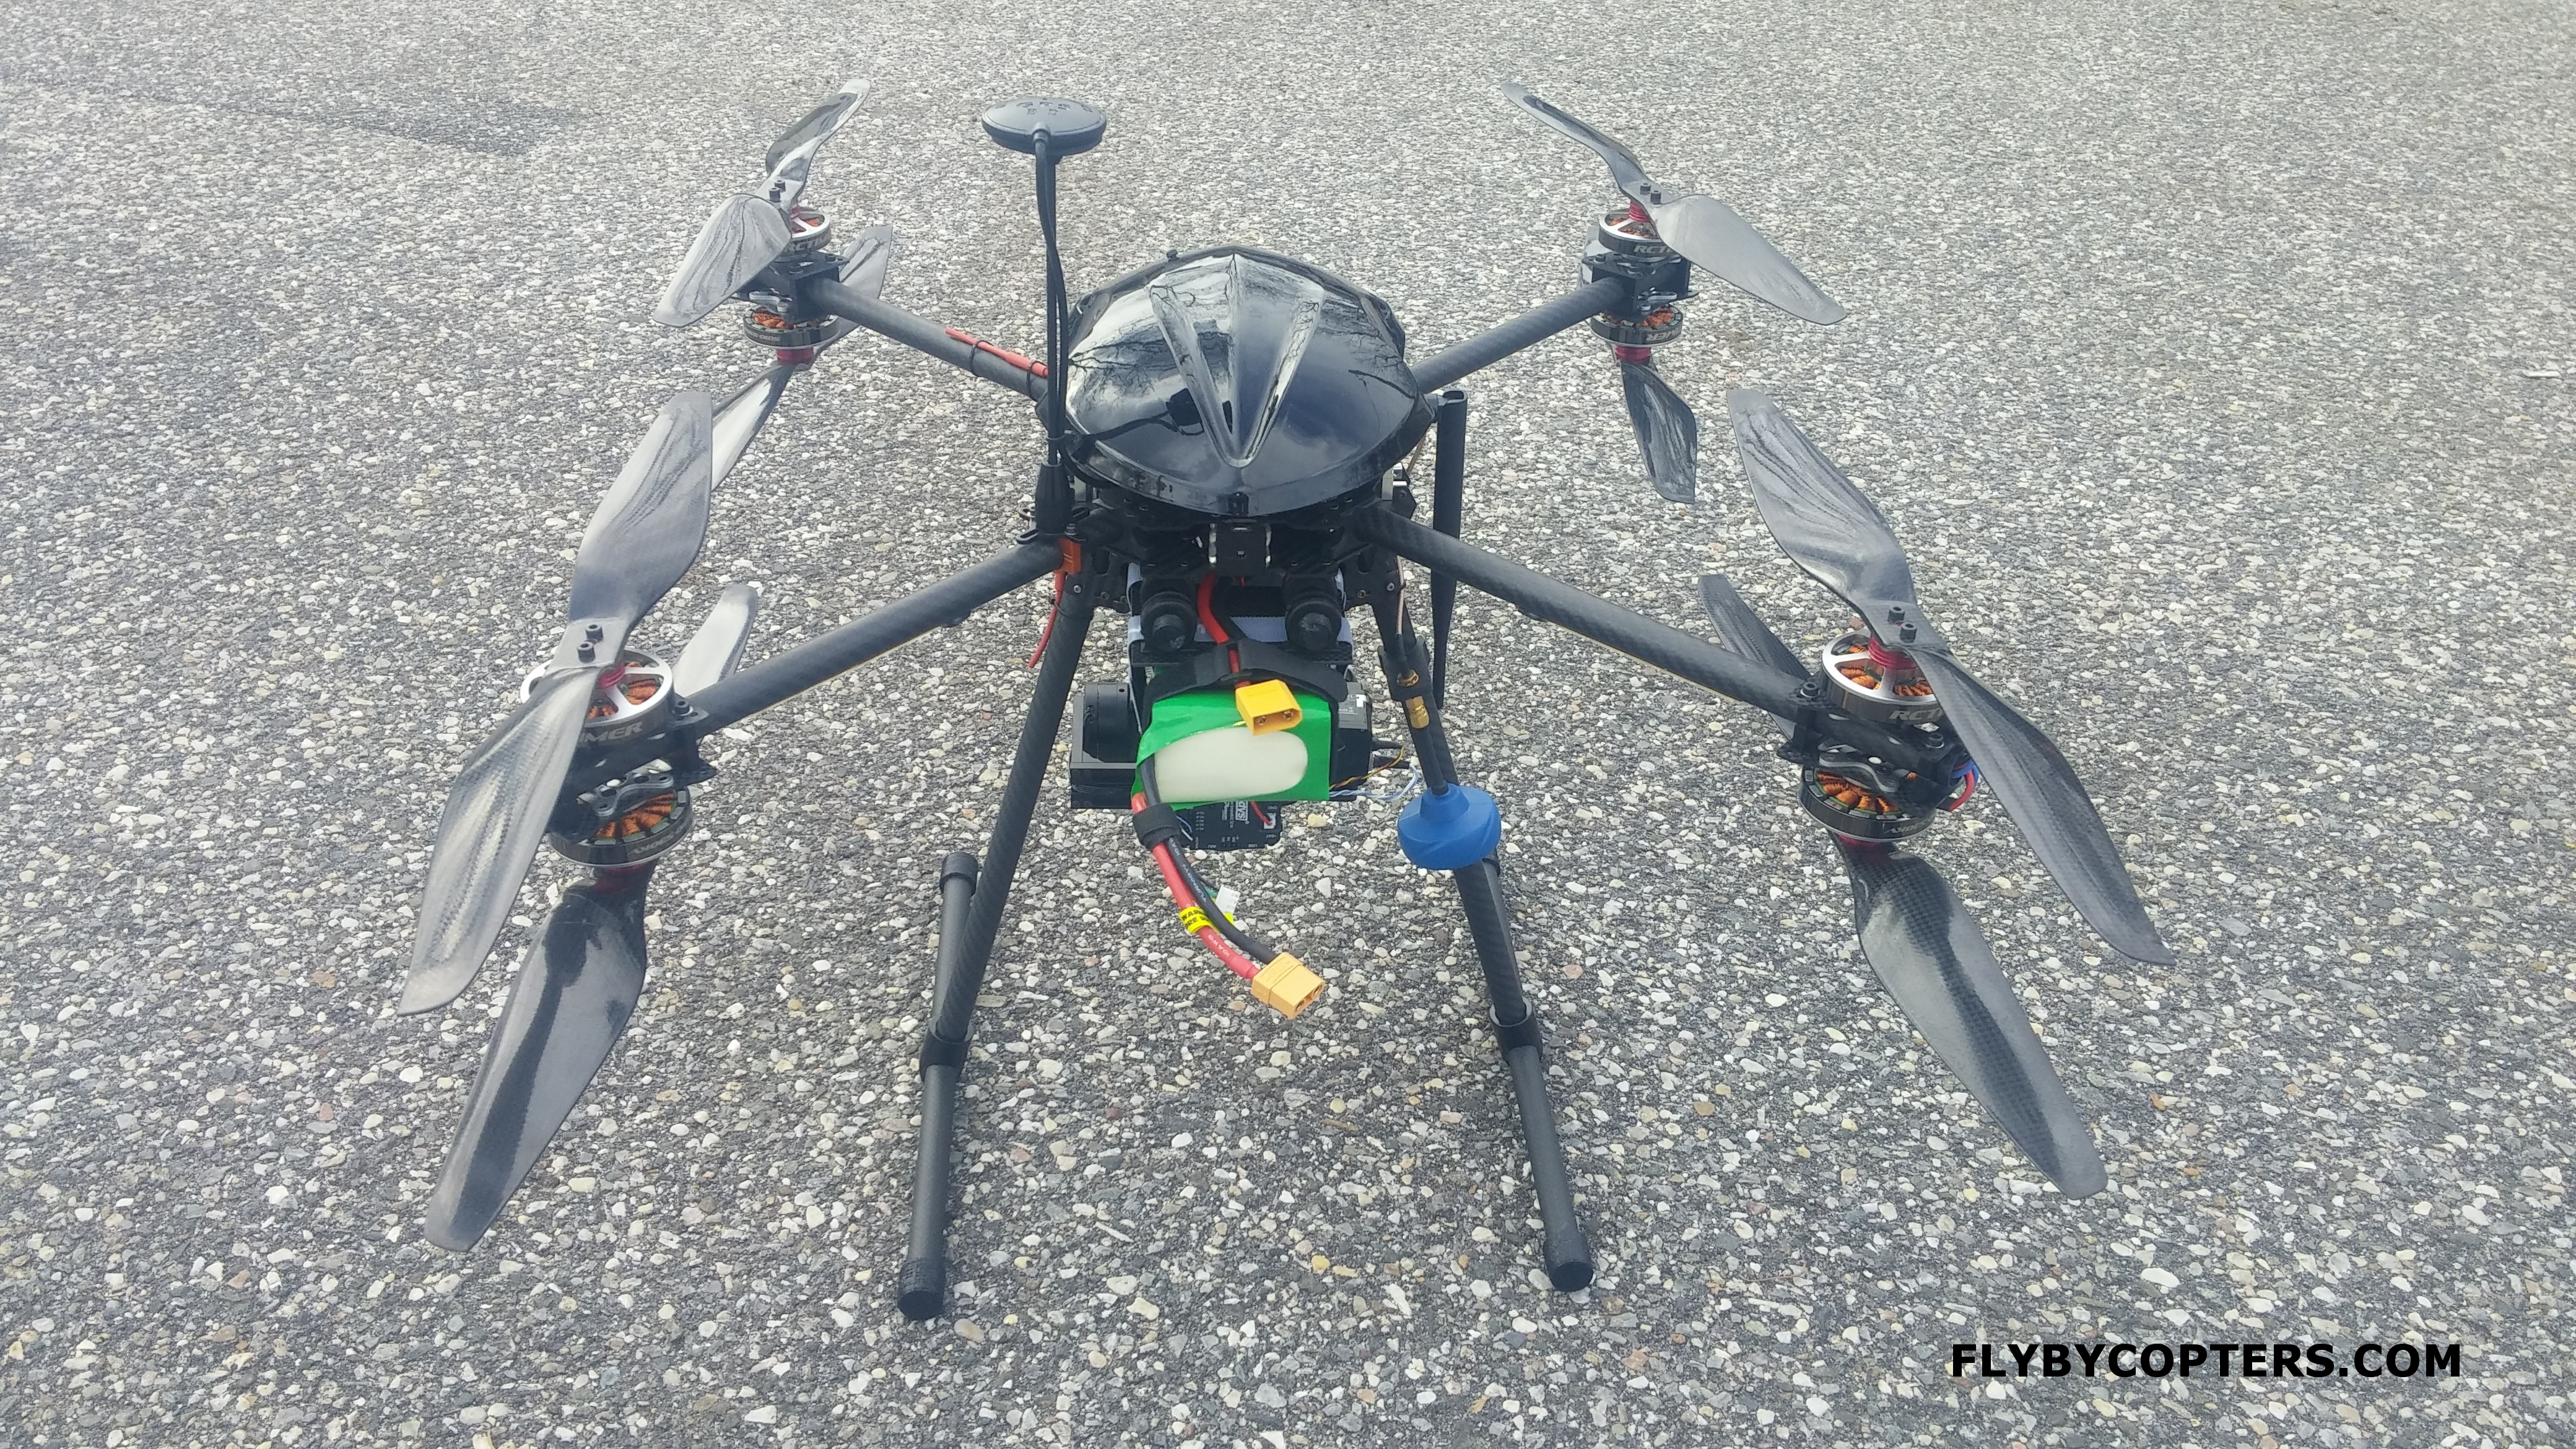 Thermal Imaging X8 640 R Drone